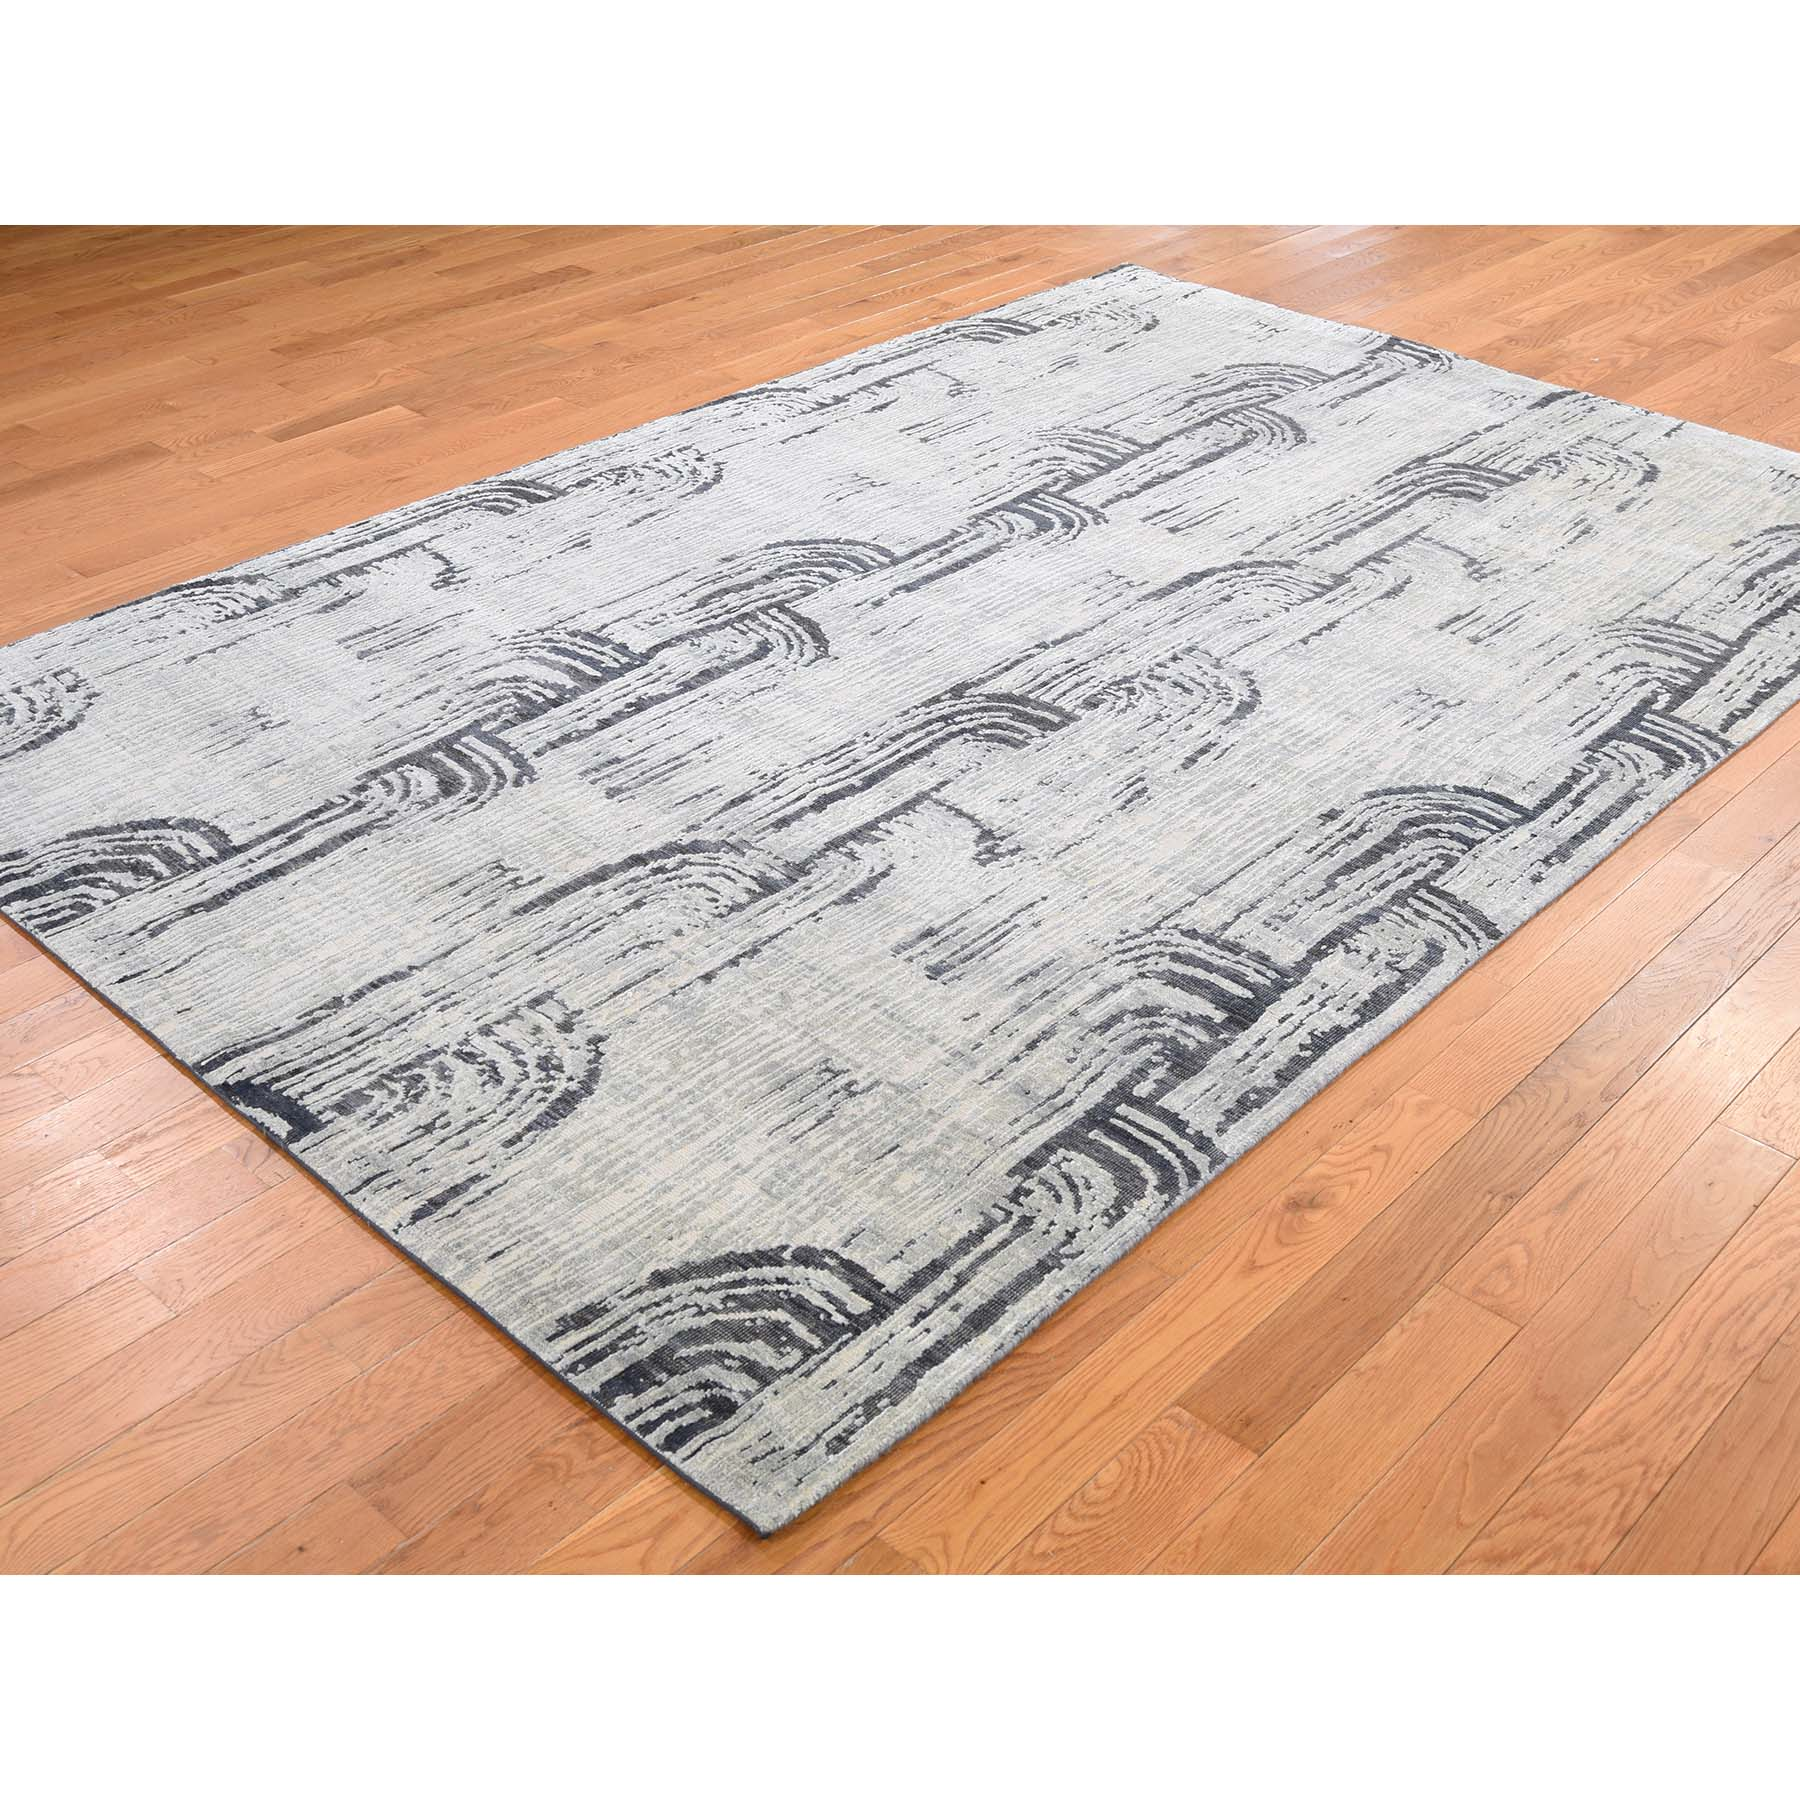 6'x9' THE CANE, Pure Silk With Textured Wool Hand-Knotted Oriental Rug